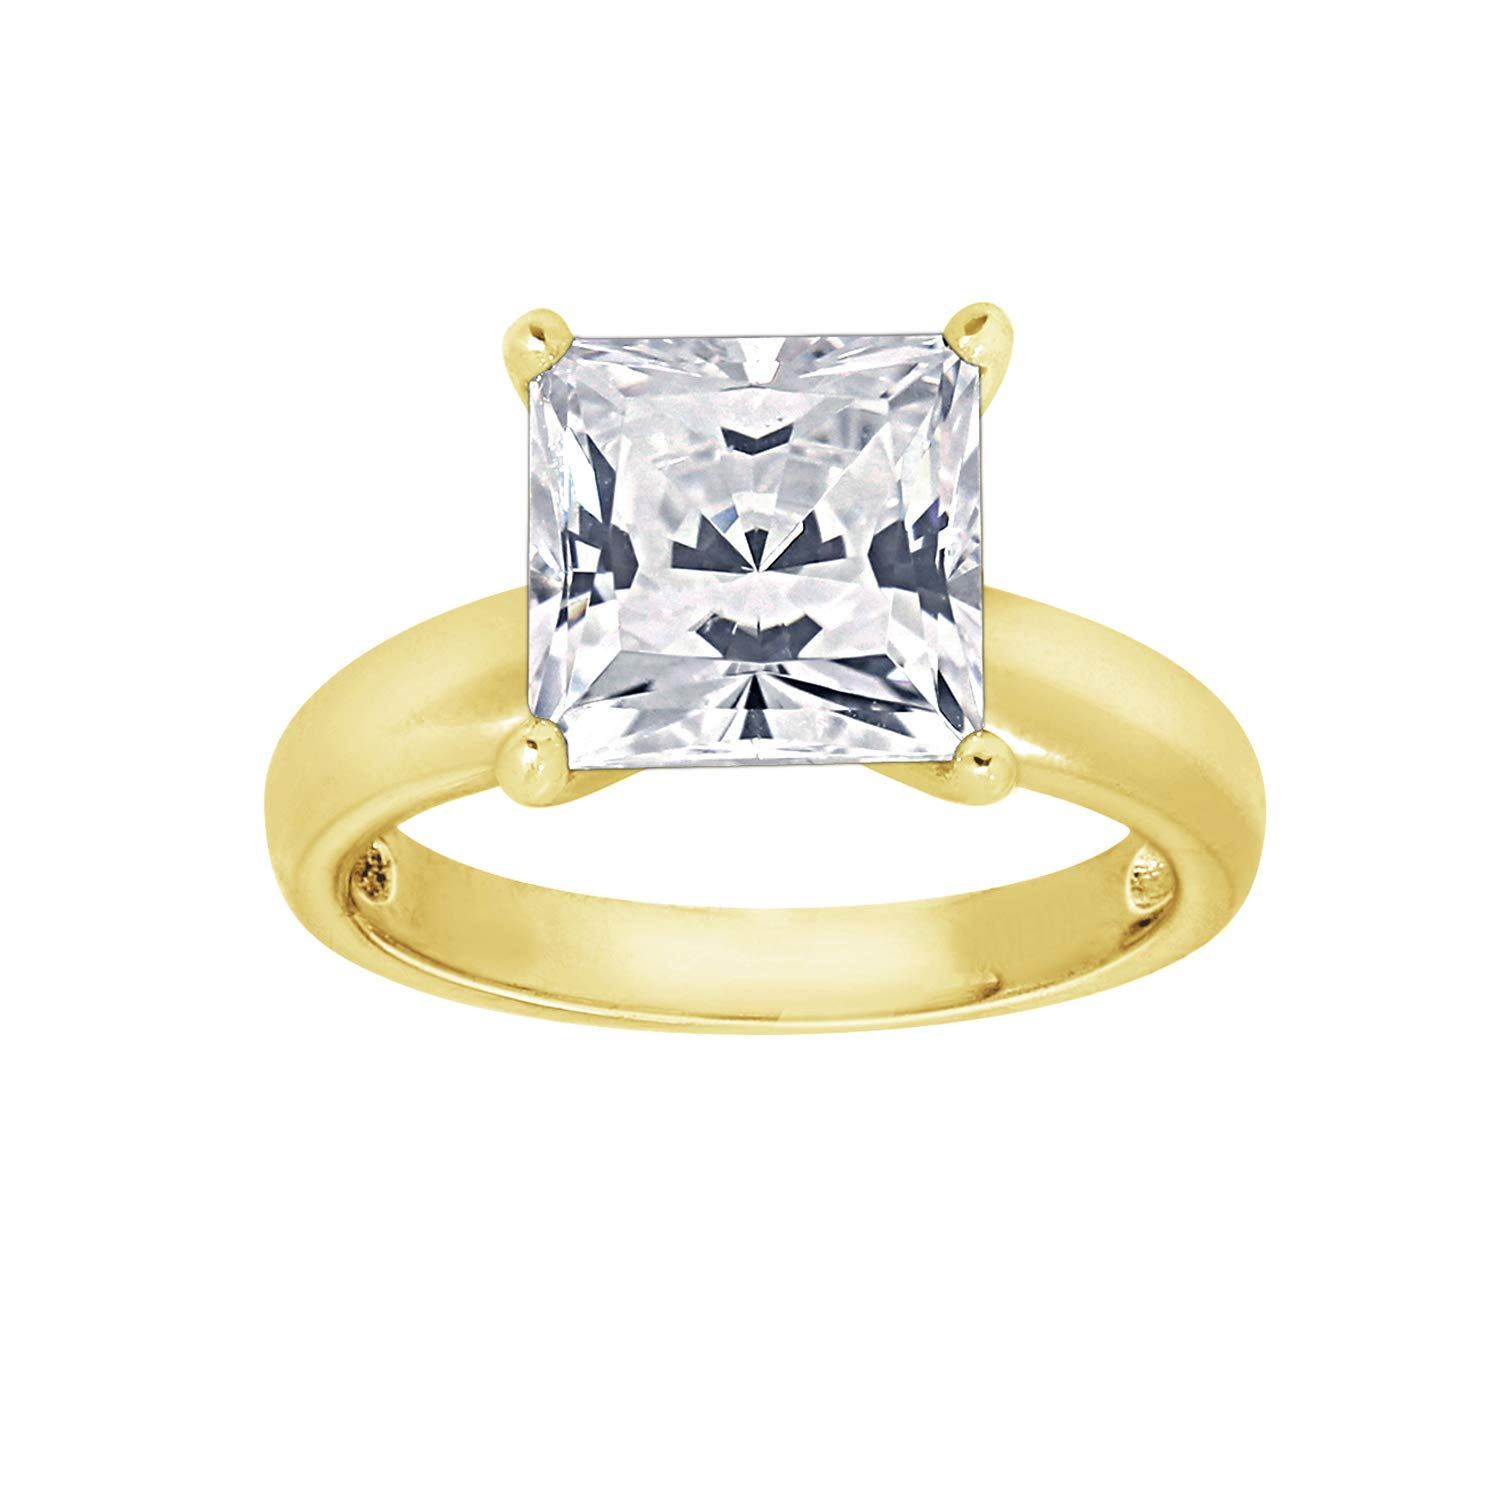 GEMOUR Rhodium or Yellow Gold or Rose Gold Plated Sterling Silver 3 cttw 8.5mm Princess Cut Cubic Zirconia Solitare Ring